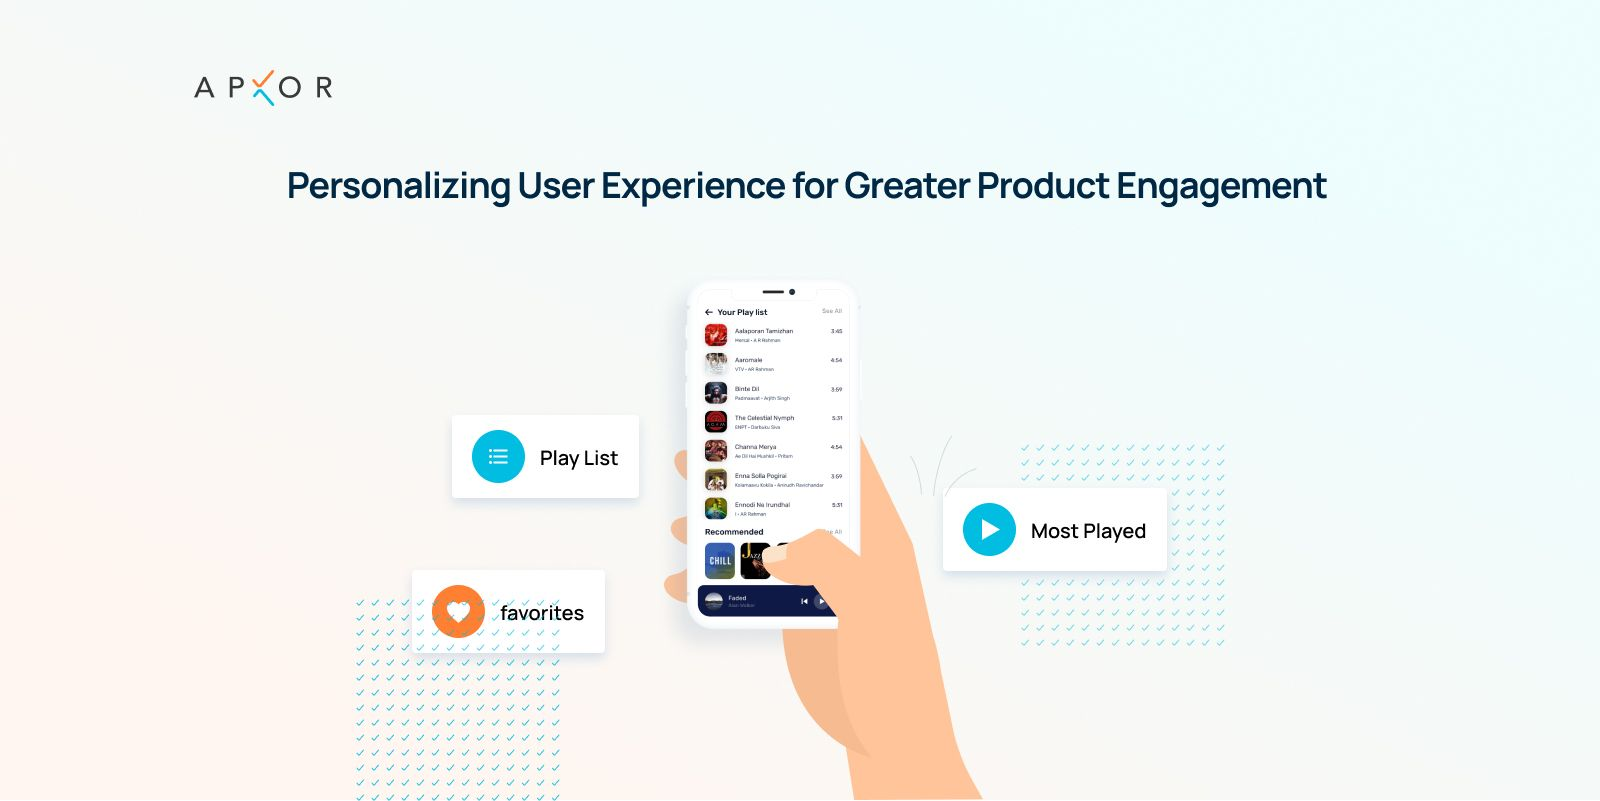 Personalizing User Experience for Greater Product Engagement